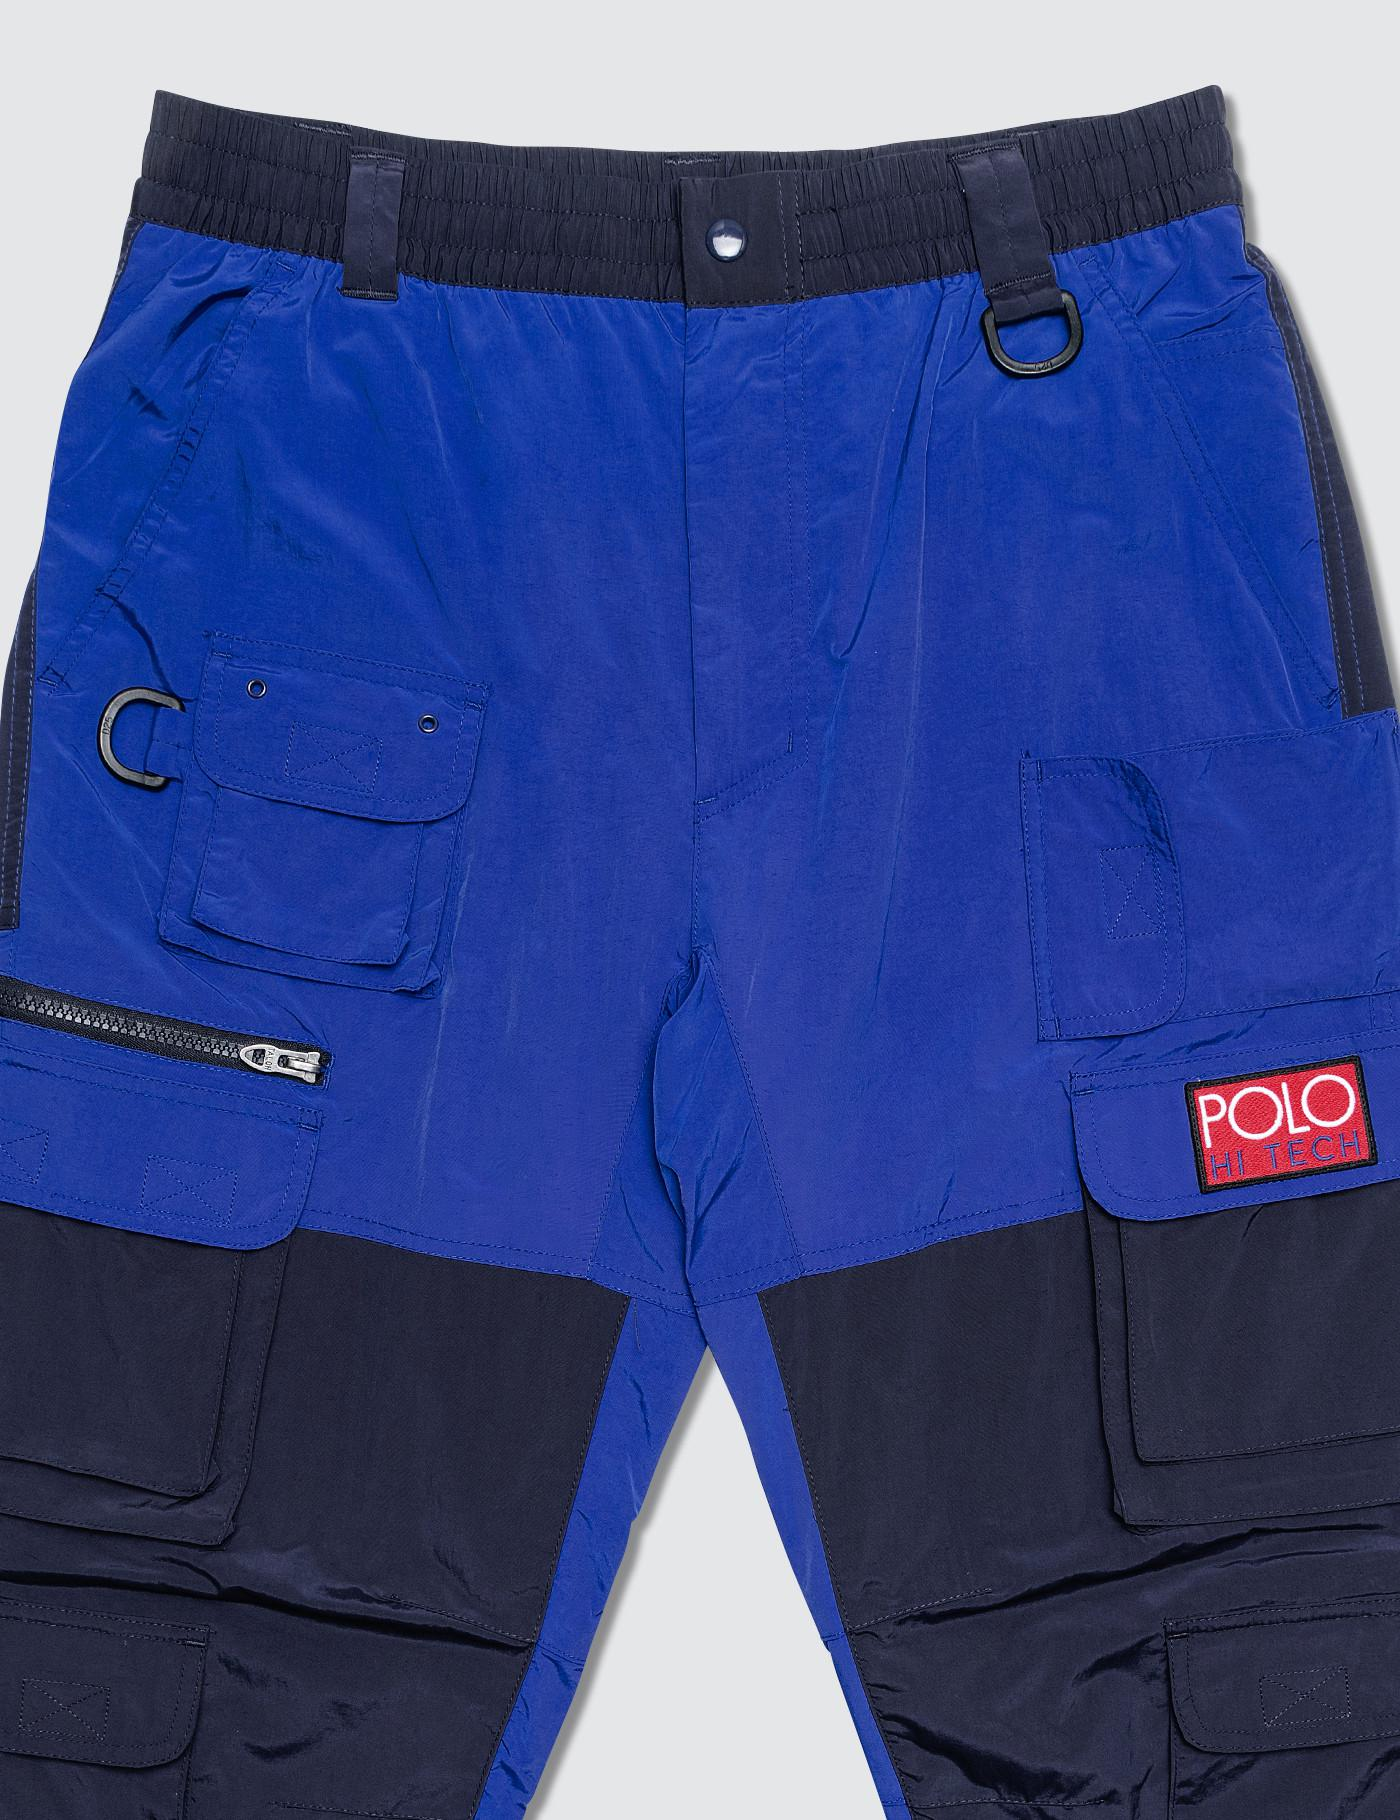 POLO Ralph Lauren Uomo Short Pant Solid Trunk RACER Blue